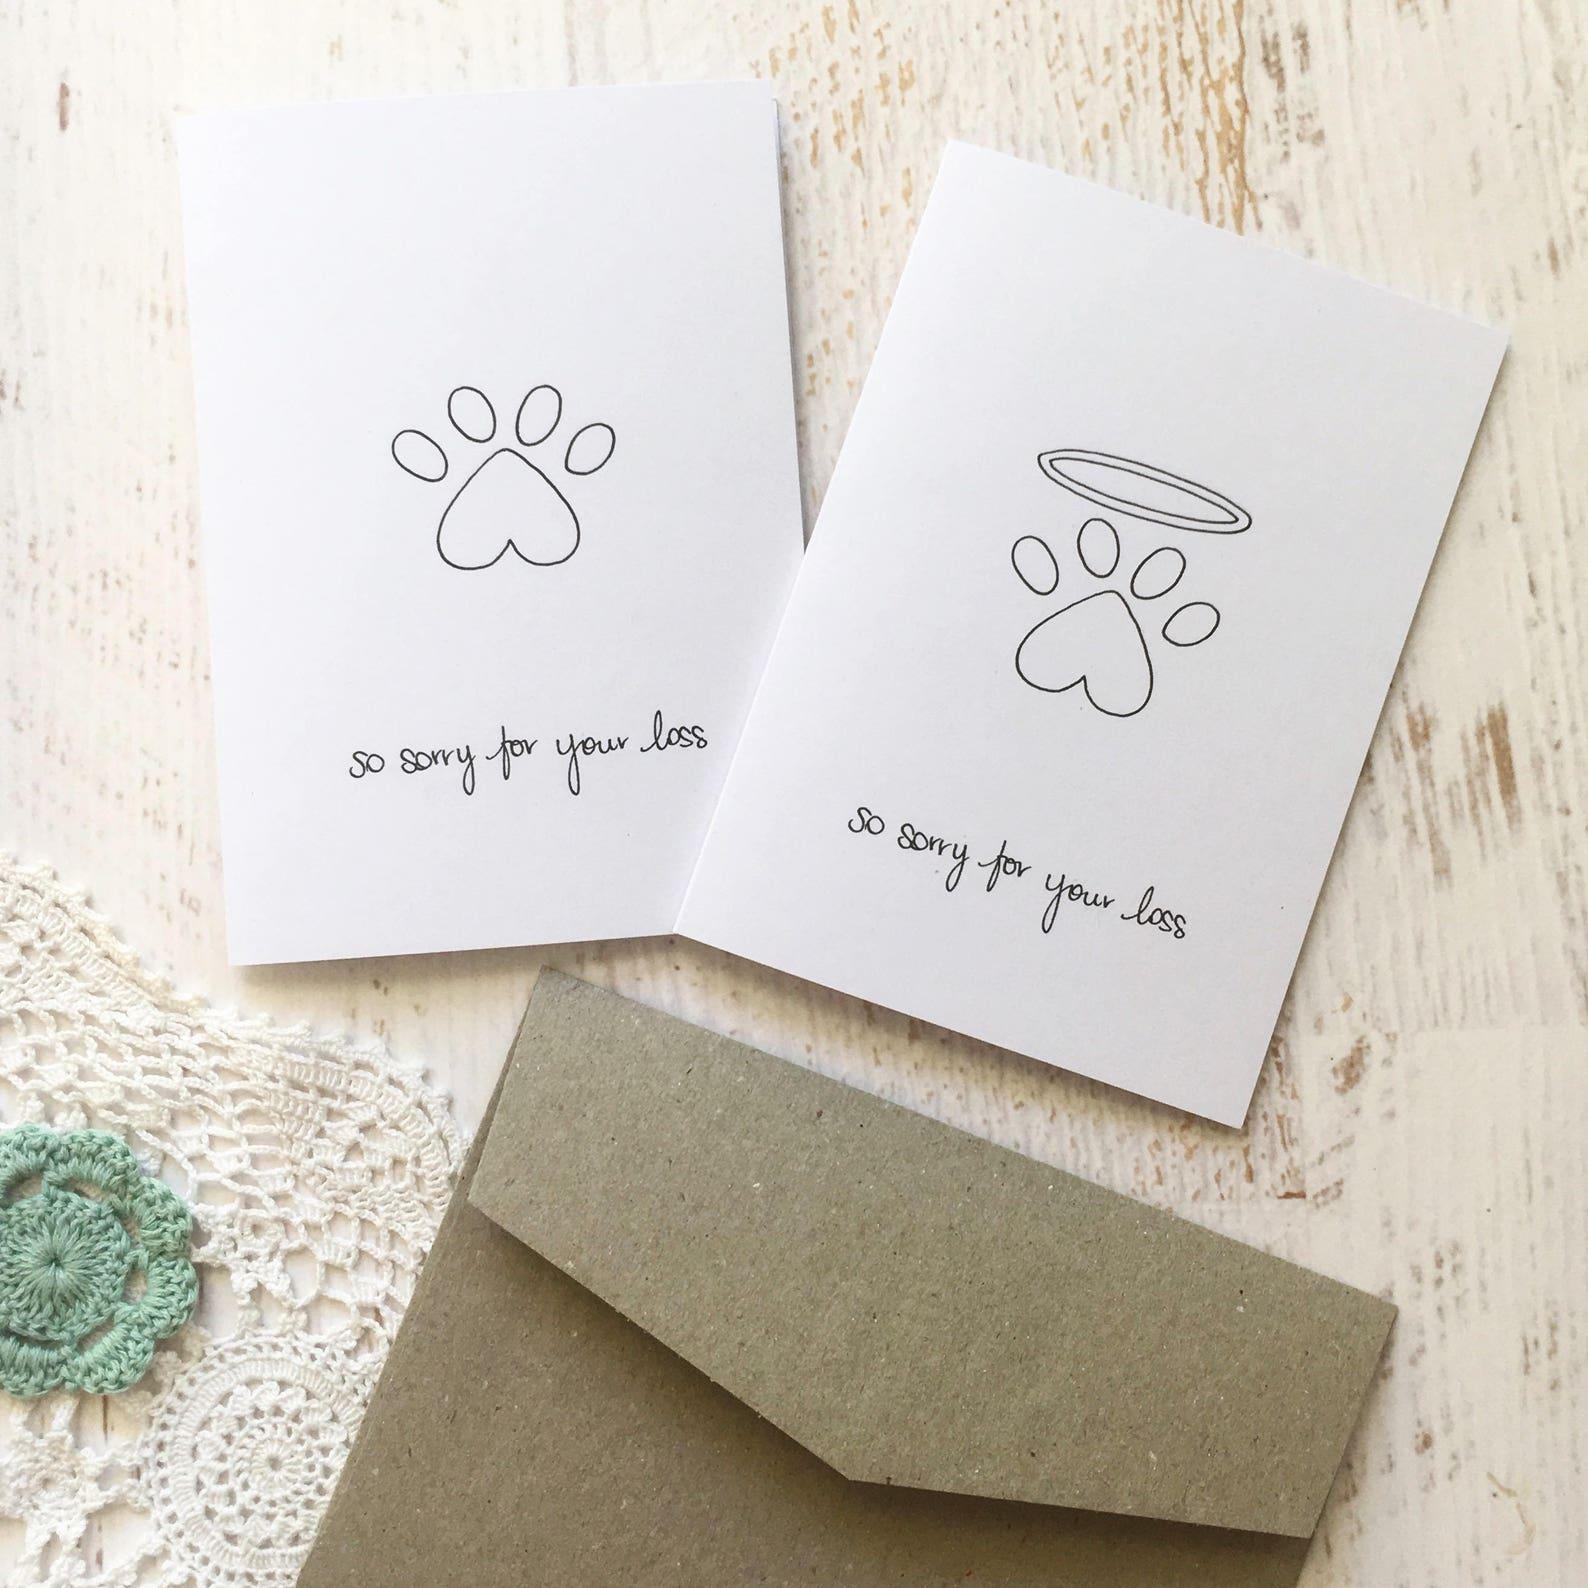 So sorry for your loss - Pet sympathy card print